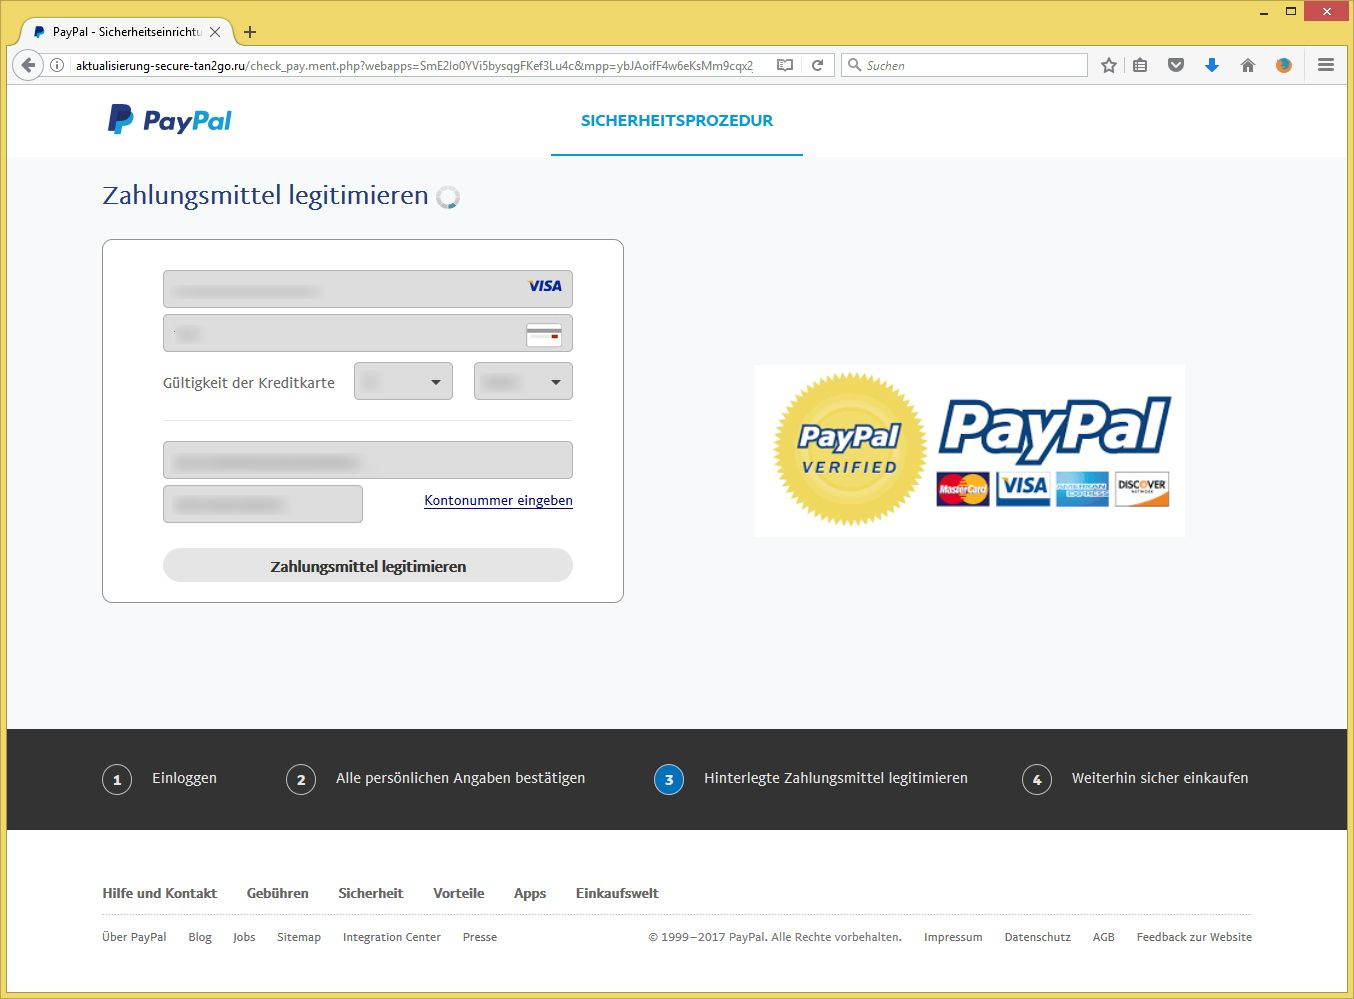 paypal phishing weiterhin unterwegs aktualisierung ihres paypal kontos von paypal alles. Black Bedroom Furniture Sets. Home Design Ideas